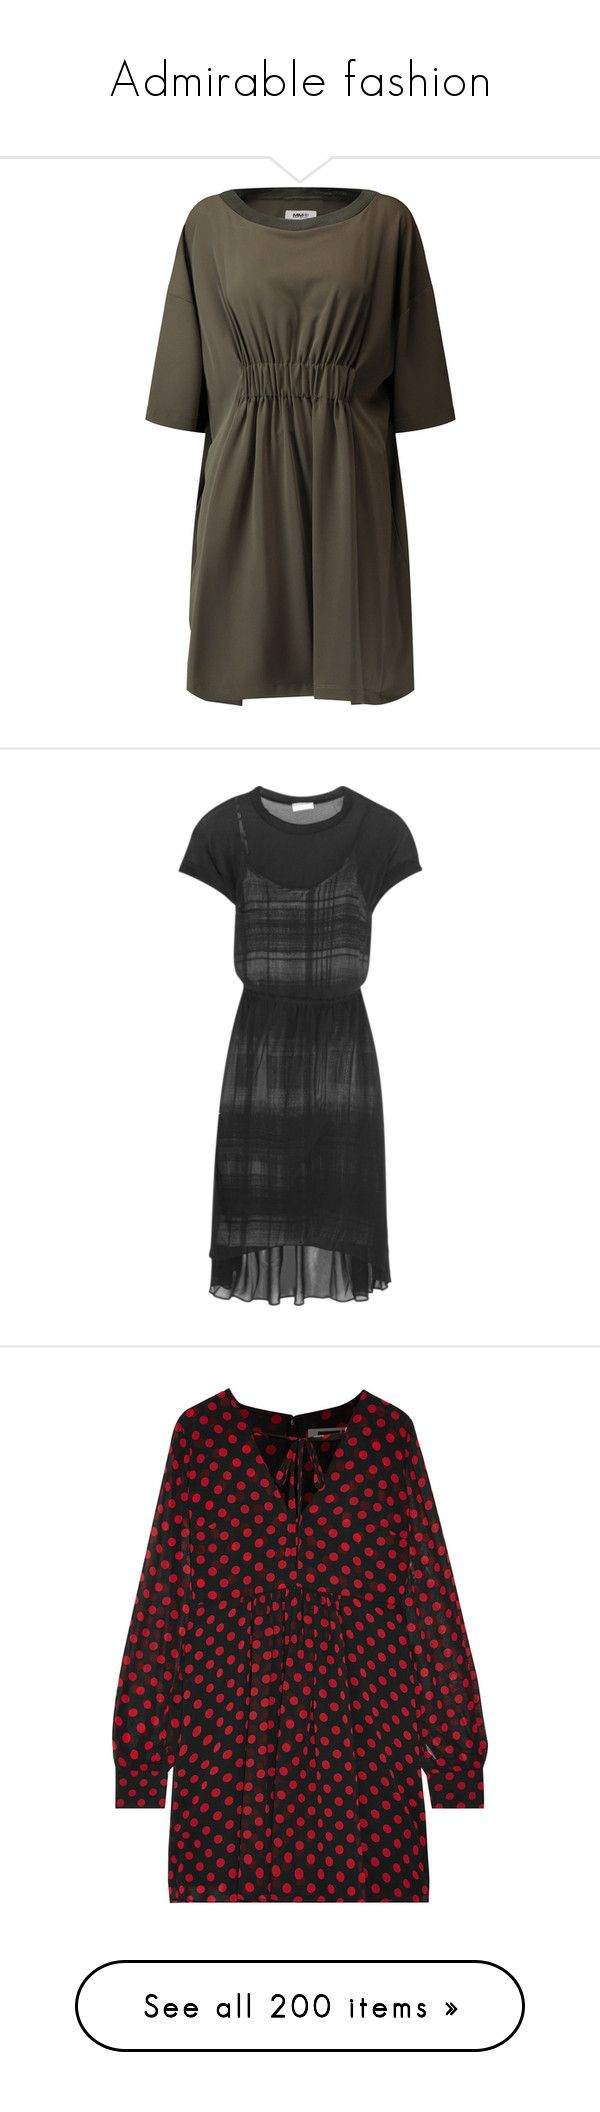 """""""Admirable fashion"""" by katelyn999 ❤ liked on Polyvore featuring dresses, army green, ribbed mini dress, army green dress, loose fitting dresses, olive green dresses, mini dress, black, midi dress and oversized dress"""